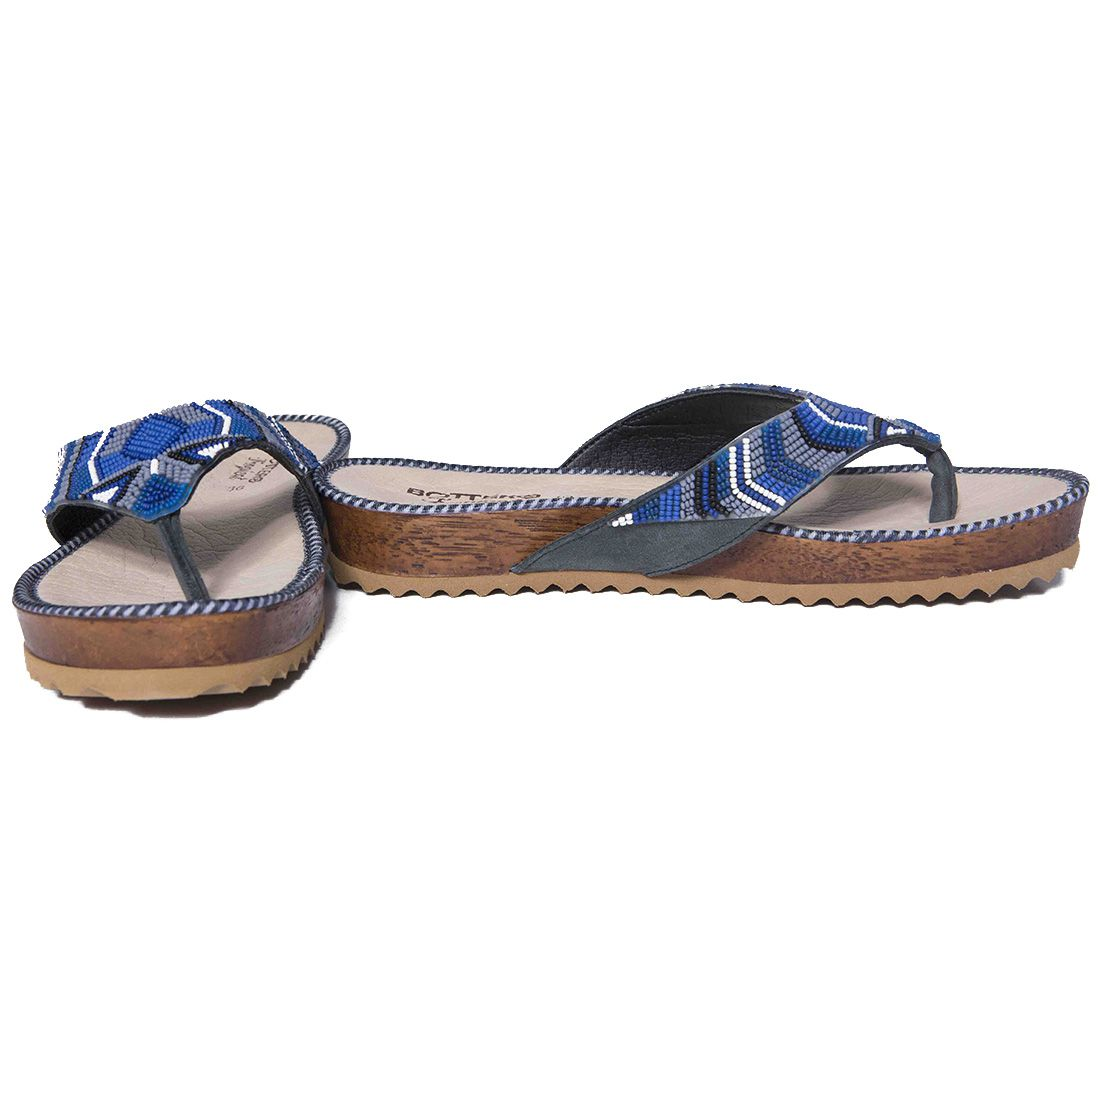 Chinelo Bottero Birken Tropical Feminino 291207